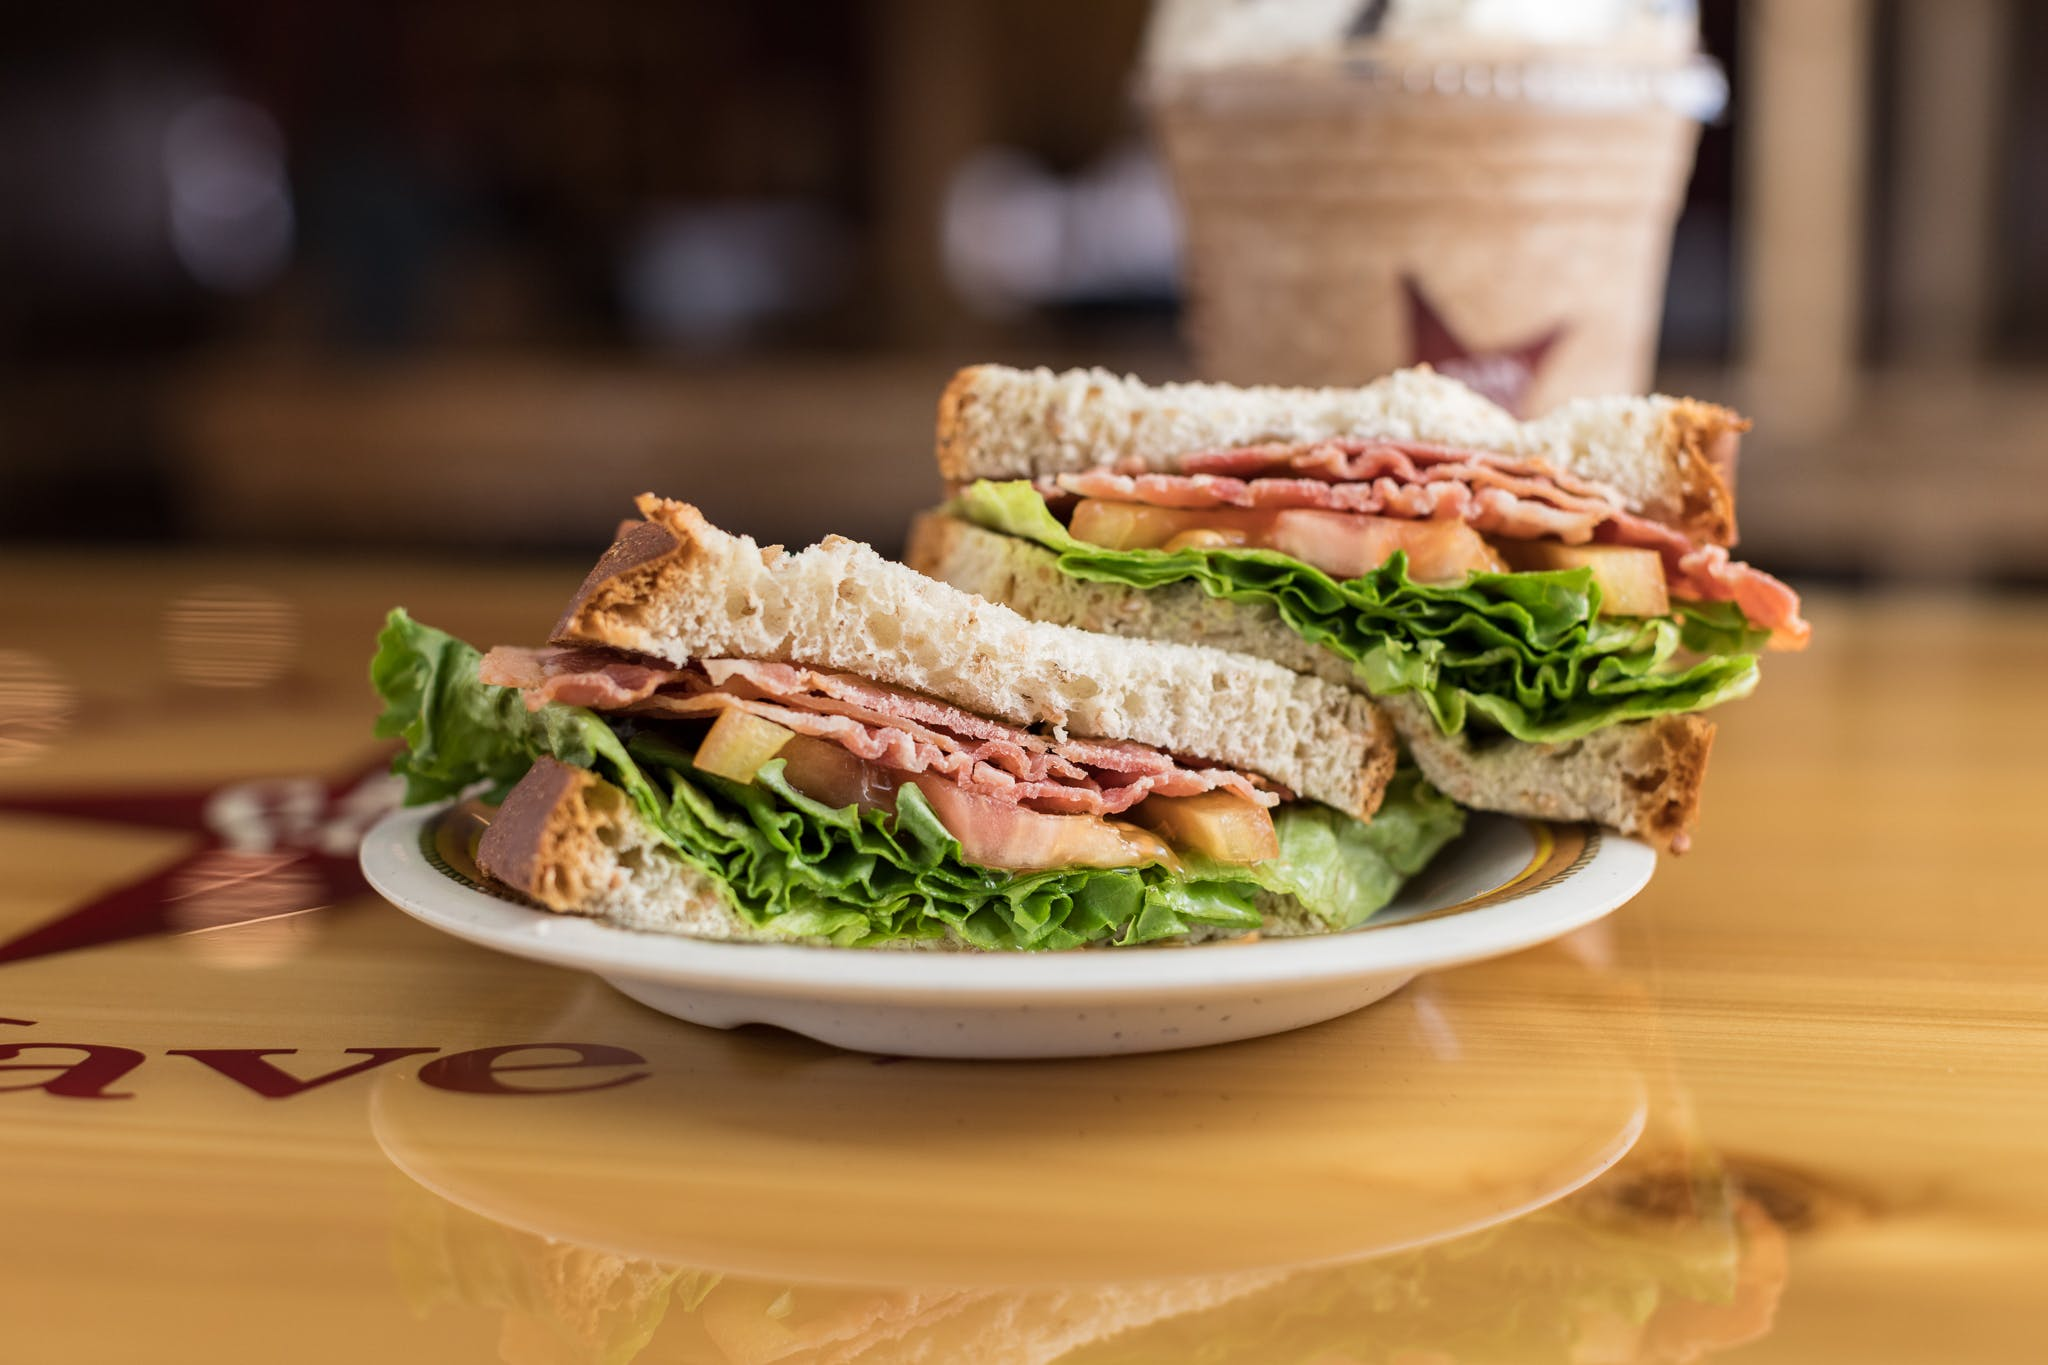 Large BLT Sandwich from Cabin Coffee Co. in Altoona, WI